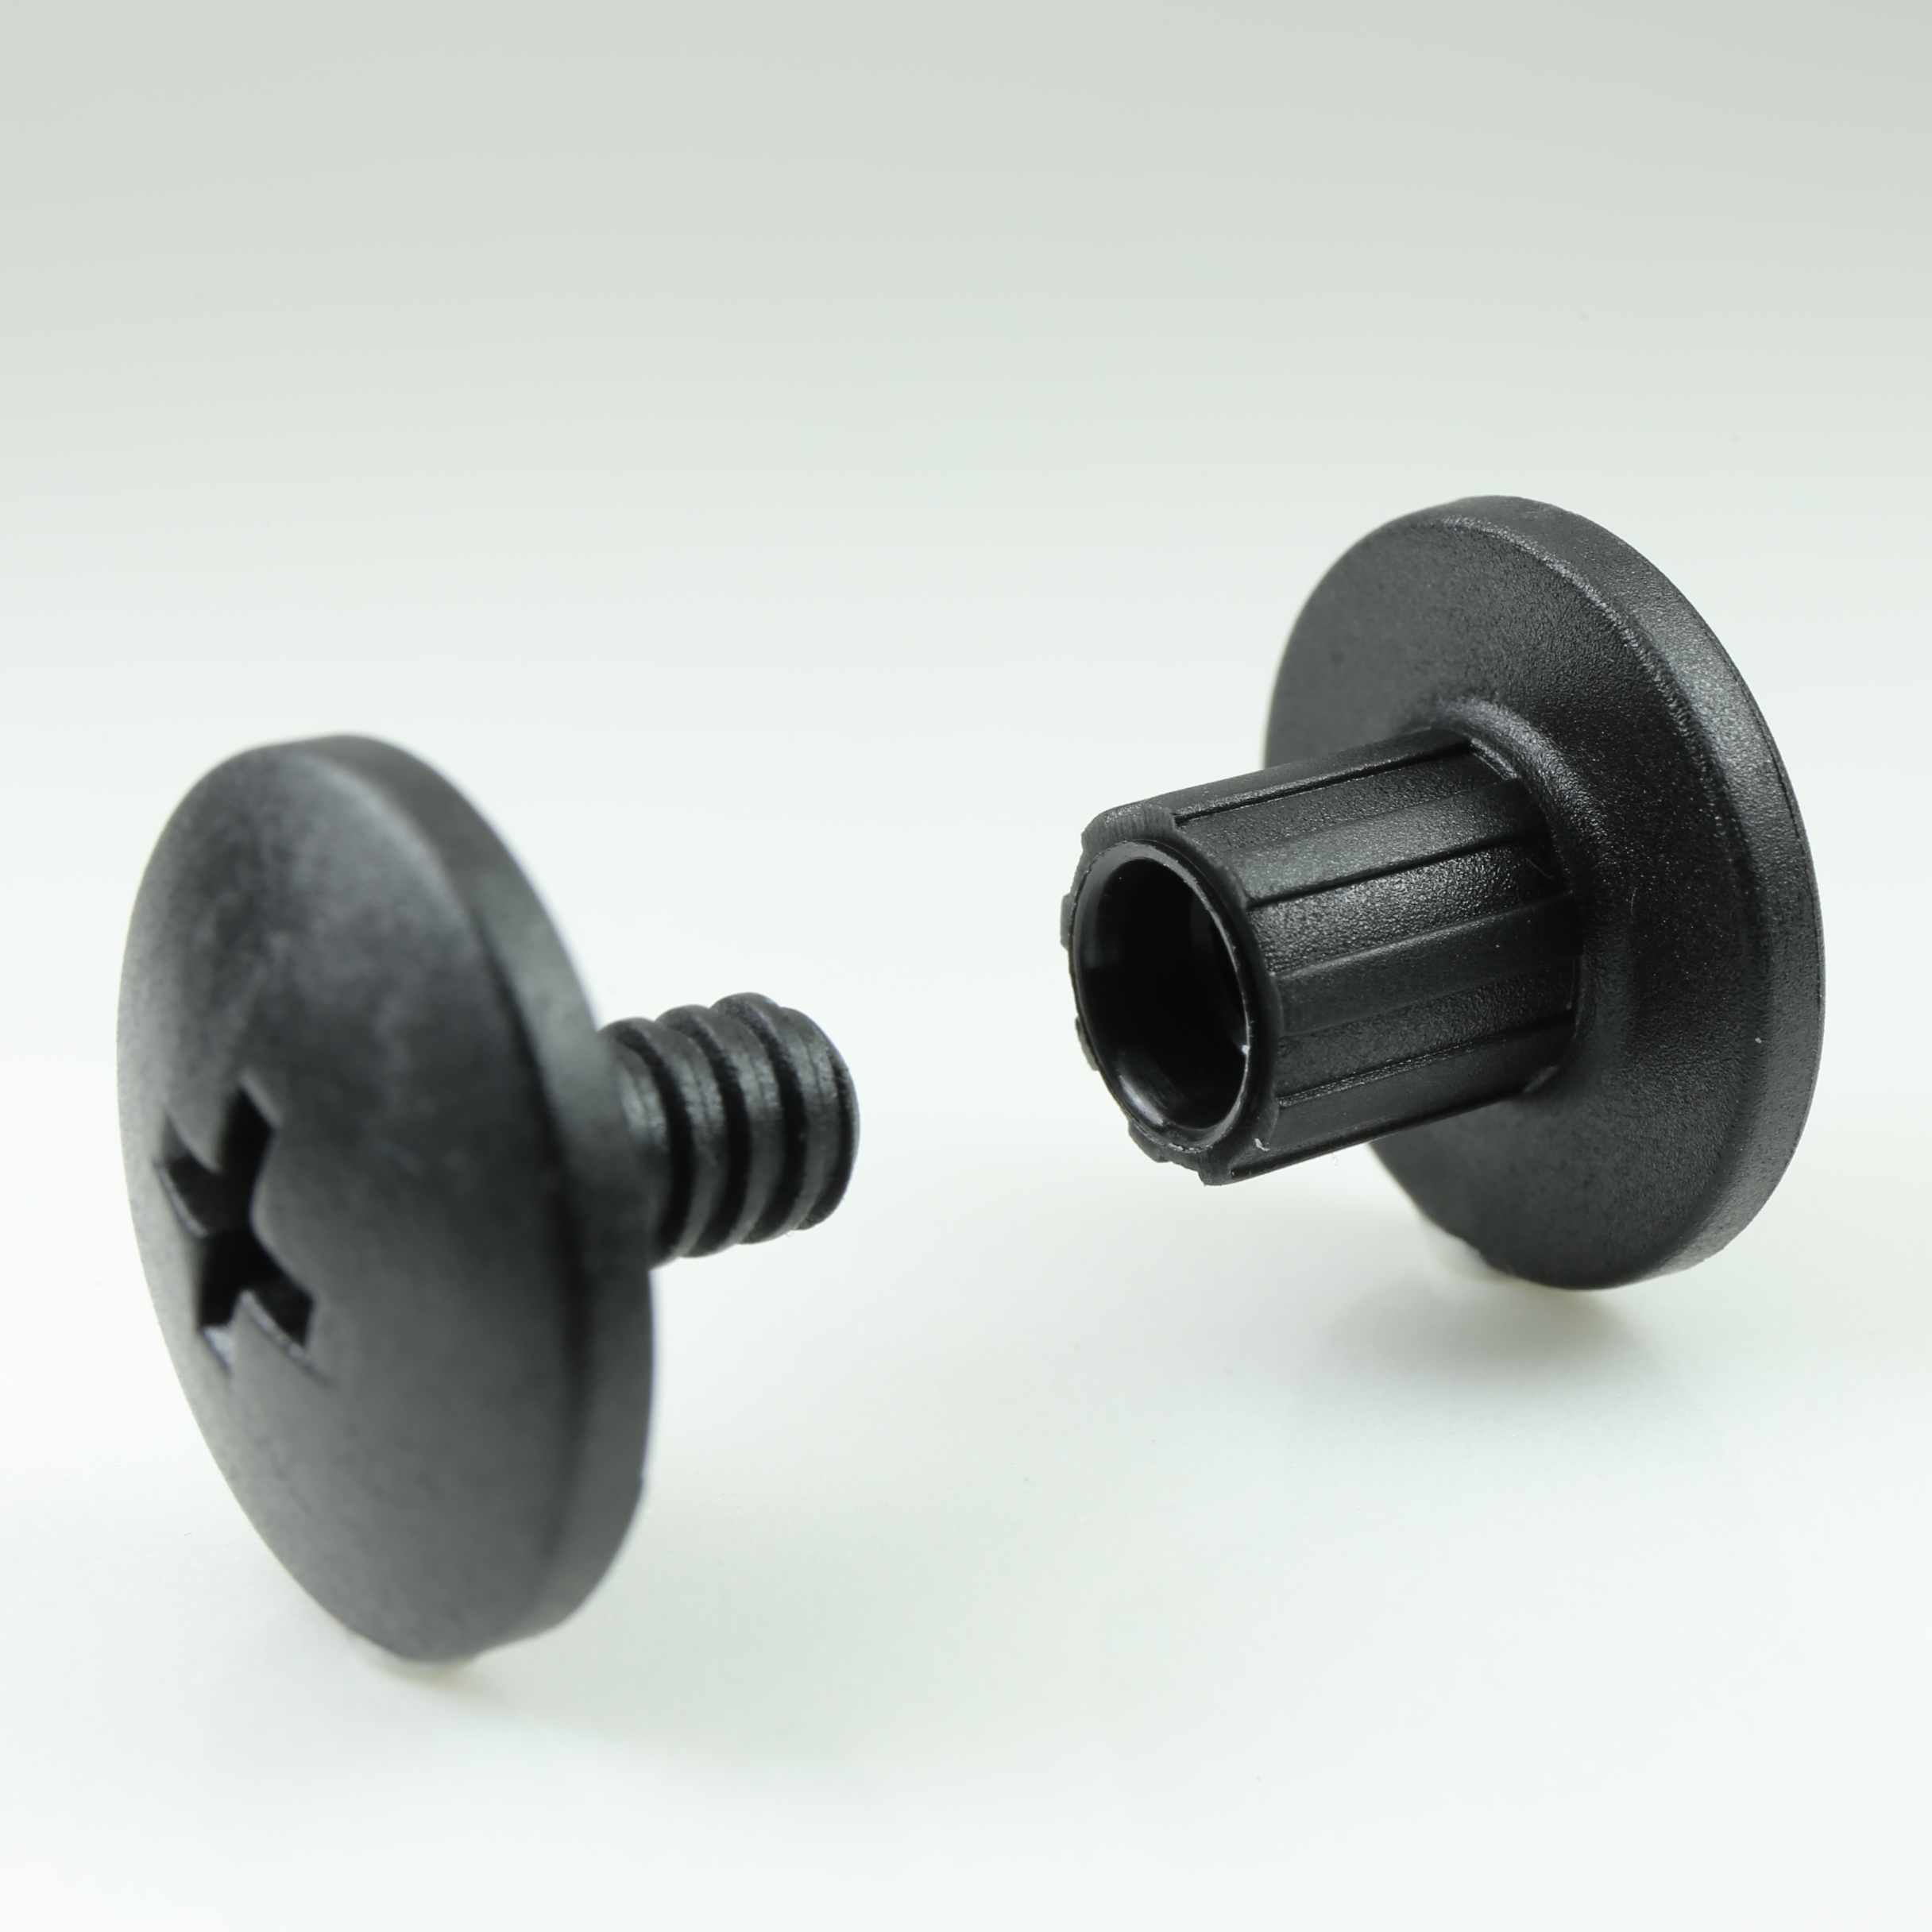 Assembly Screw - M5 Diving Screw